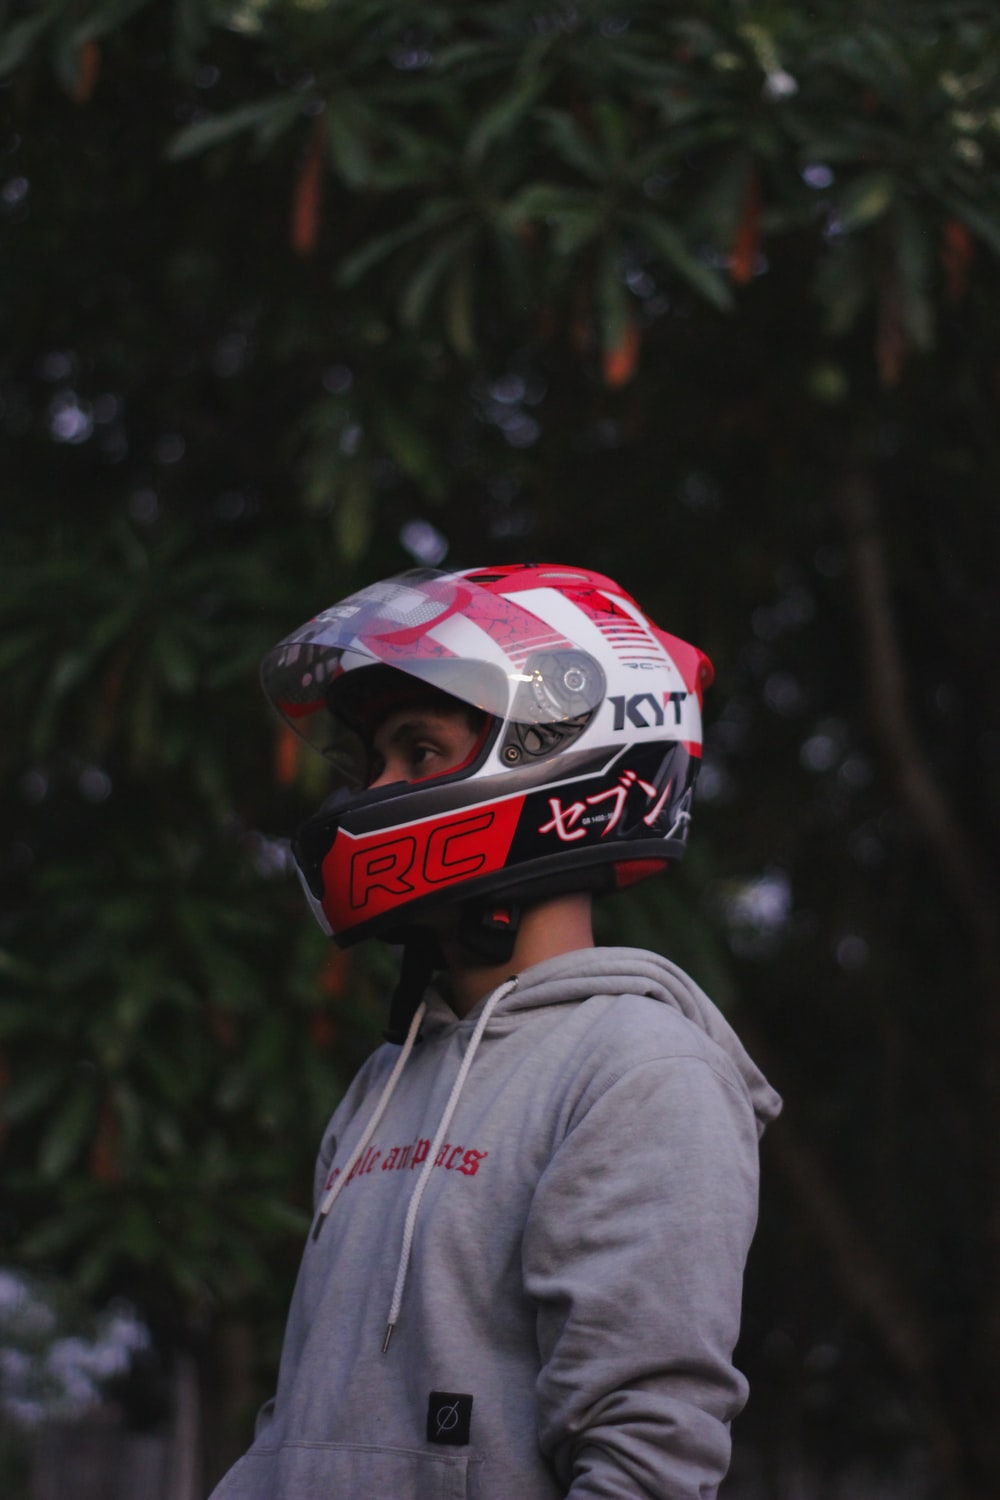 person in gray hoodie wearing red white and black helmet